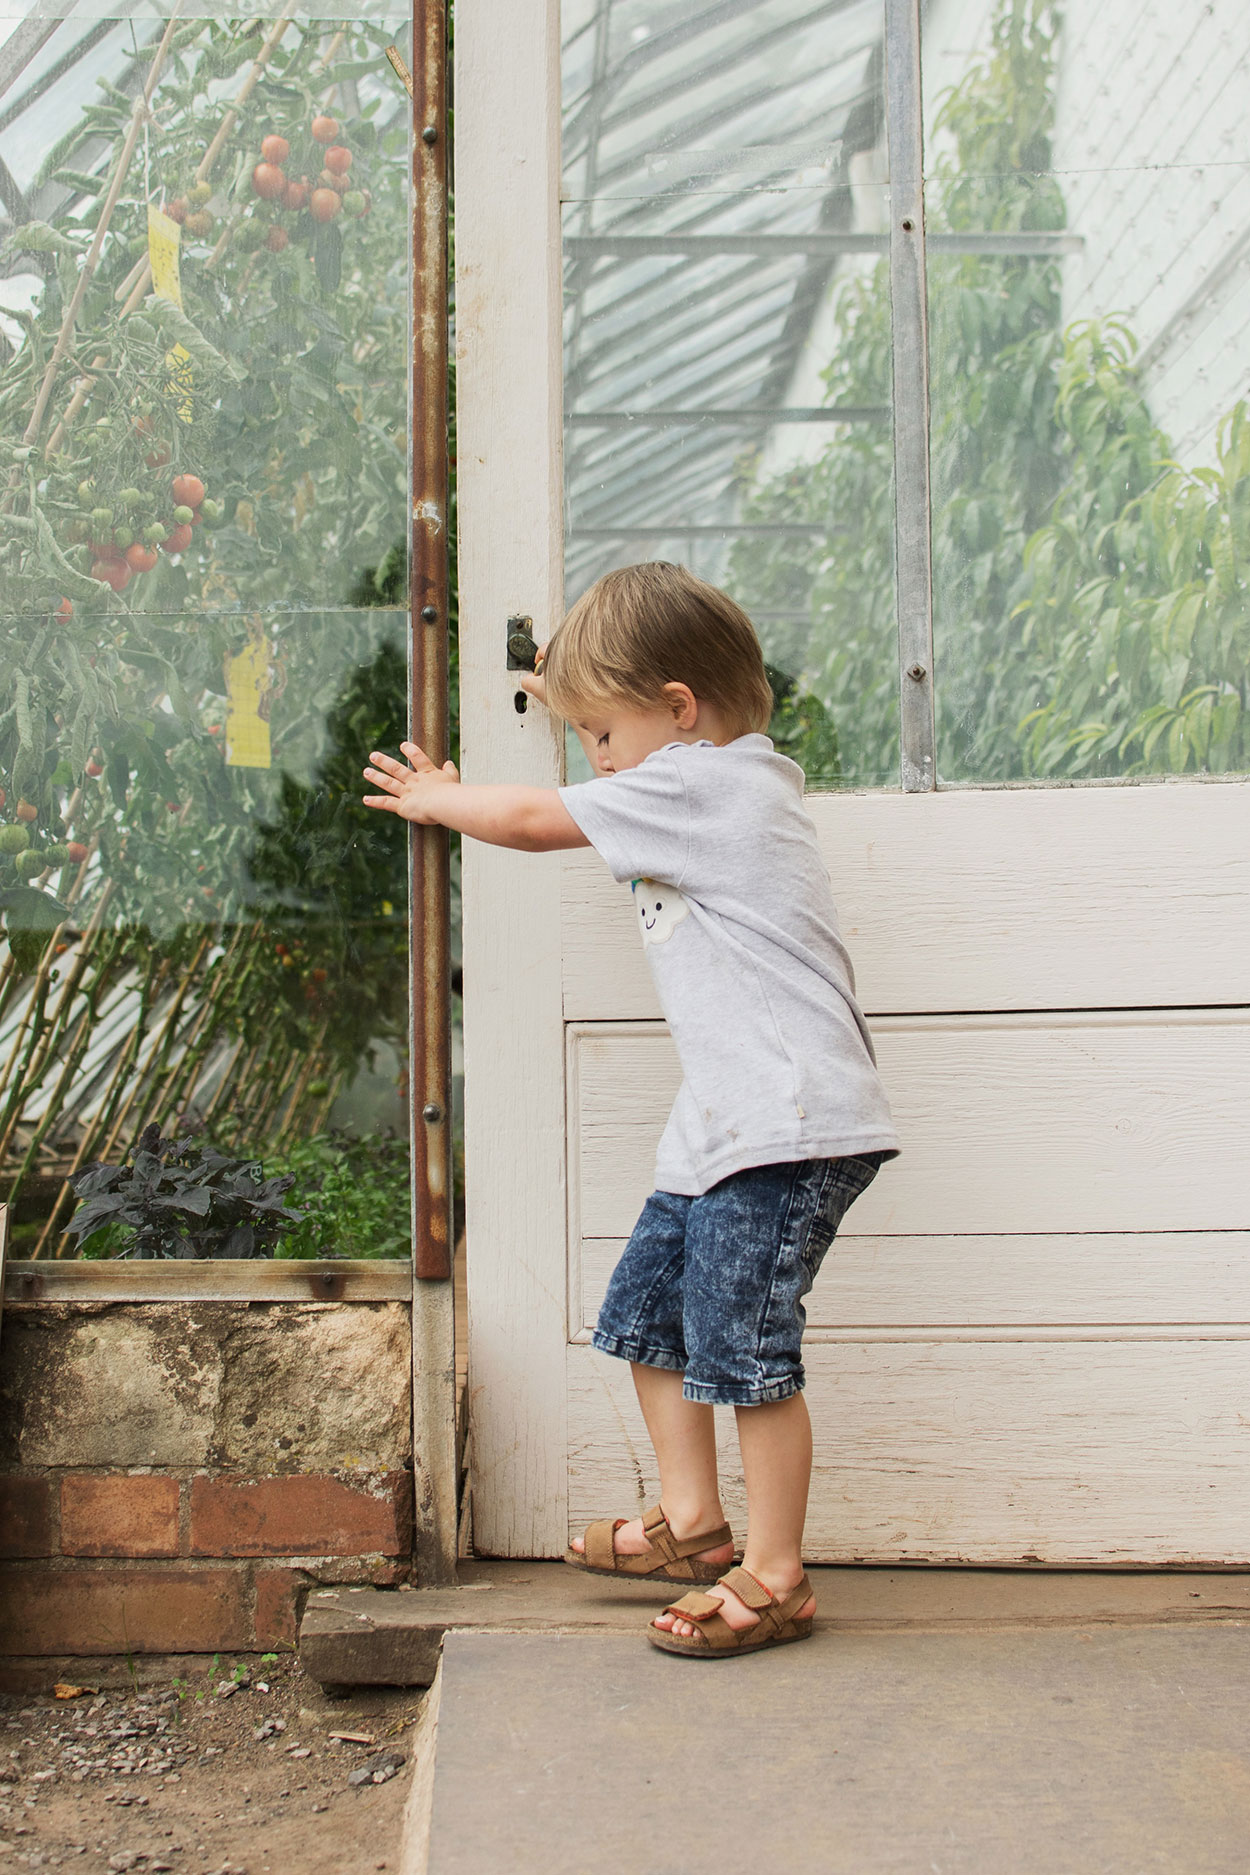 Young boy wearing Frugi rainbow applique t-shirt closing the door of the greenhouse at Tyntesfield Estate, Hampshire, National Trust